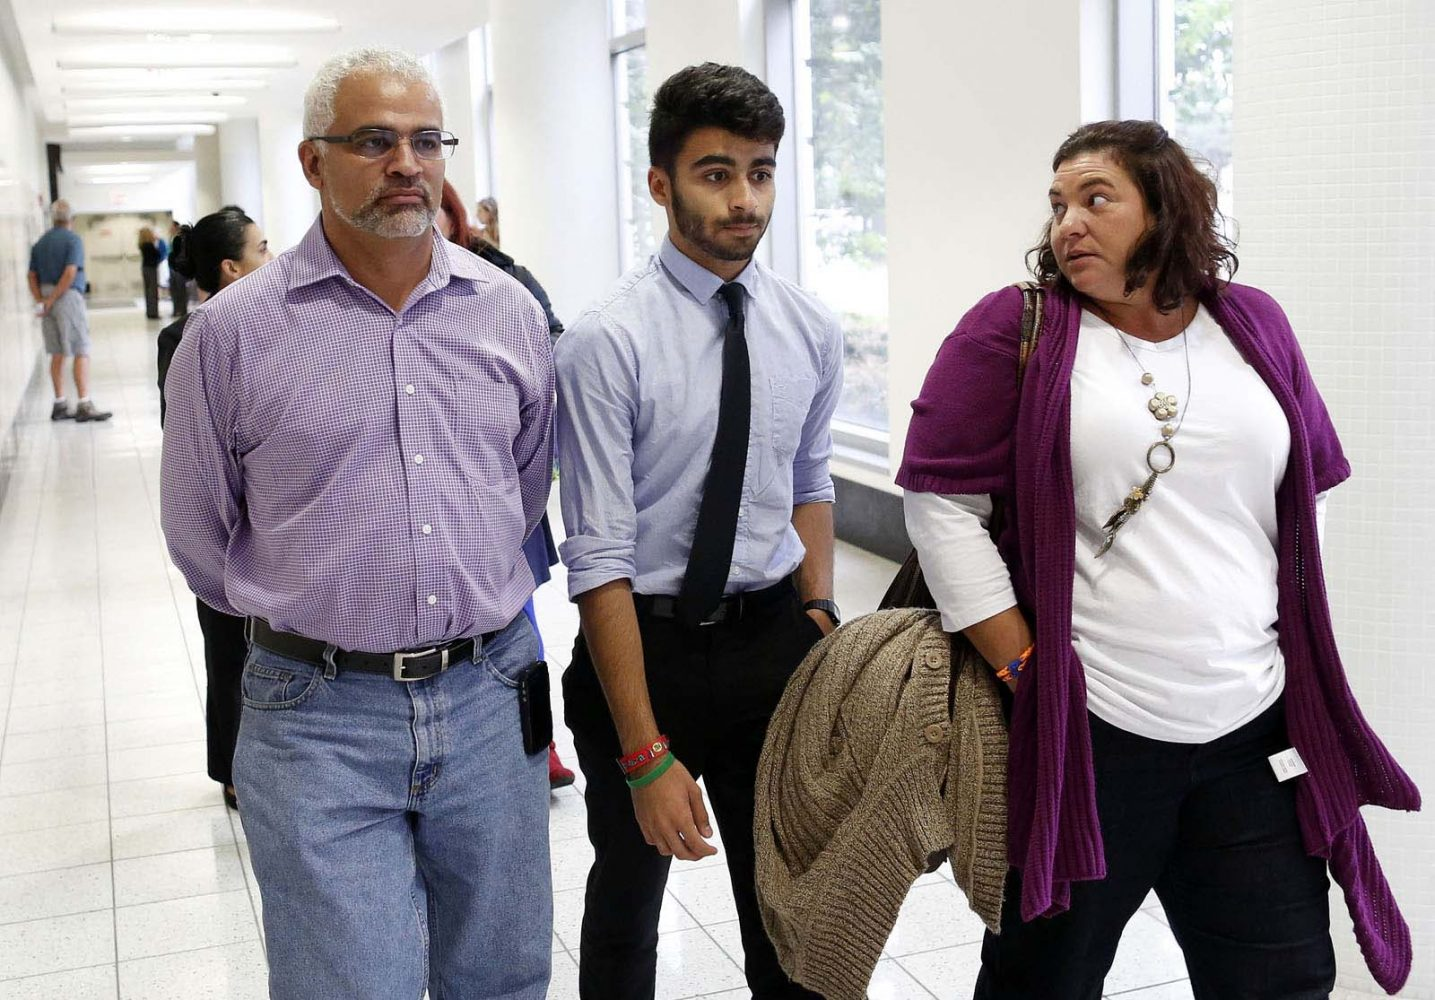 Carlos and Alex Aguilar, the father and brother of slain University of Florida student Christian Aguilar, walk the hall of the Alachua County Criminal Justice Center during a mid-afternoon break in the murder trial of Pedro Bravo Monday, August 11, 2014.  Bravo is accused of killing University of Florida student Christian Aguilar.  (Doug Finger/The Gainesville Sun/Pool)